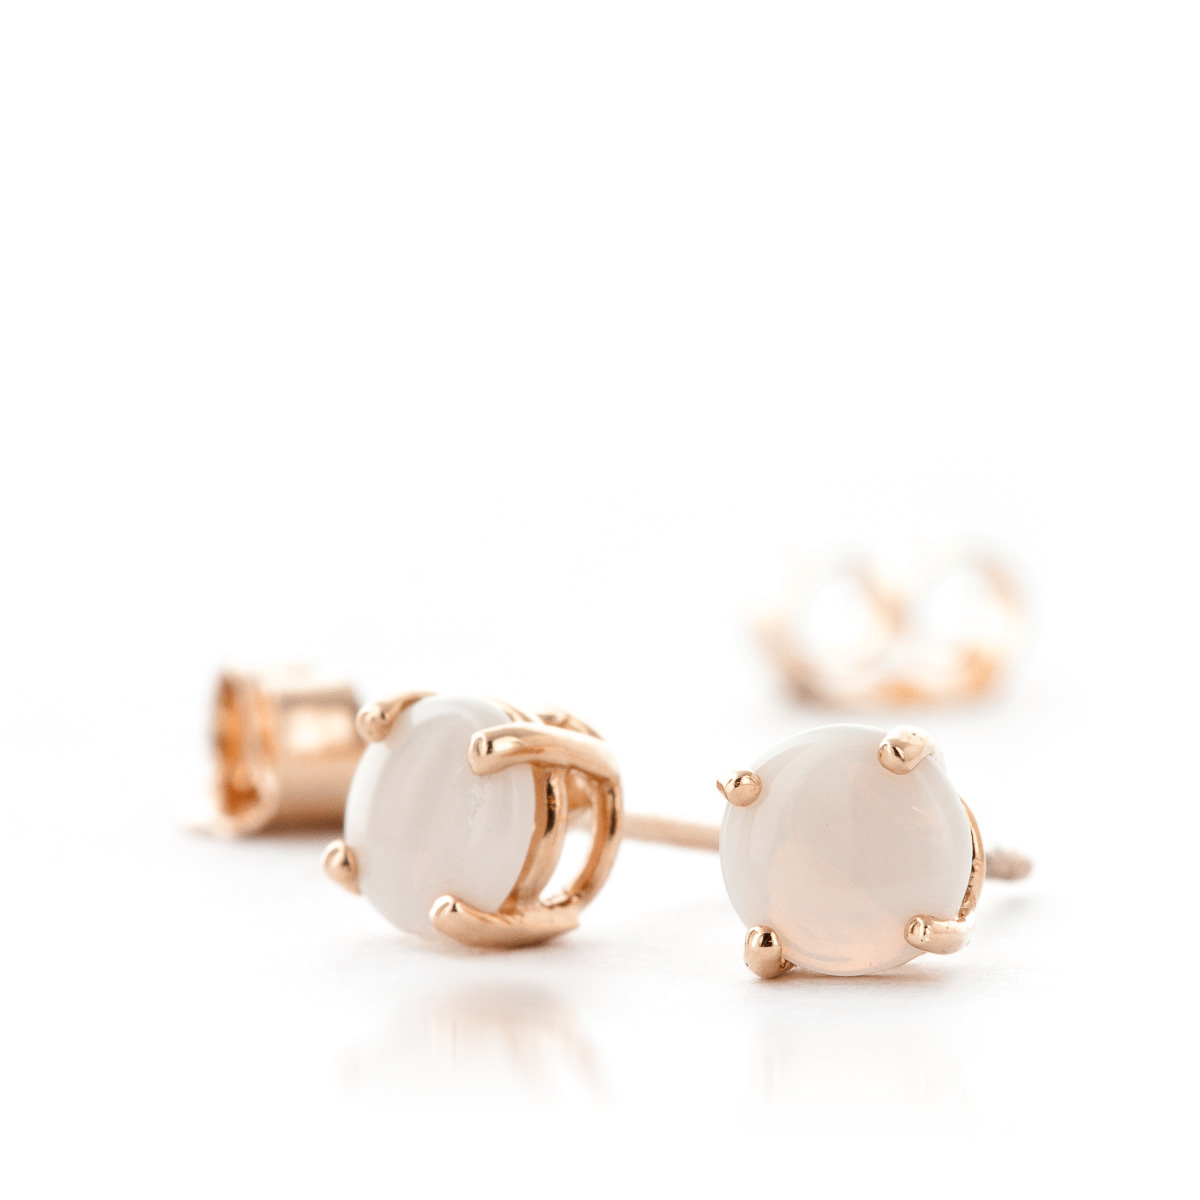 Opal Stud Earrings 0.7ctw in 9ct Rose Gold